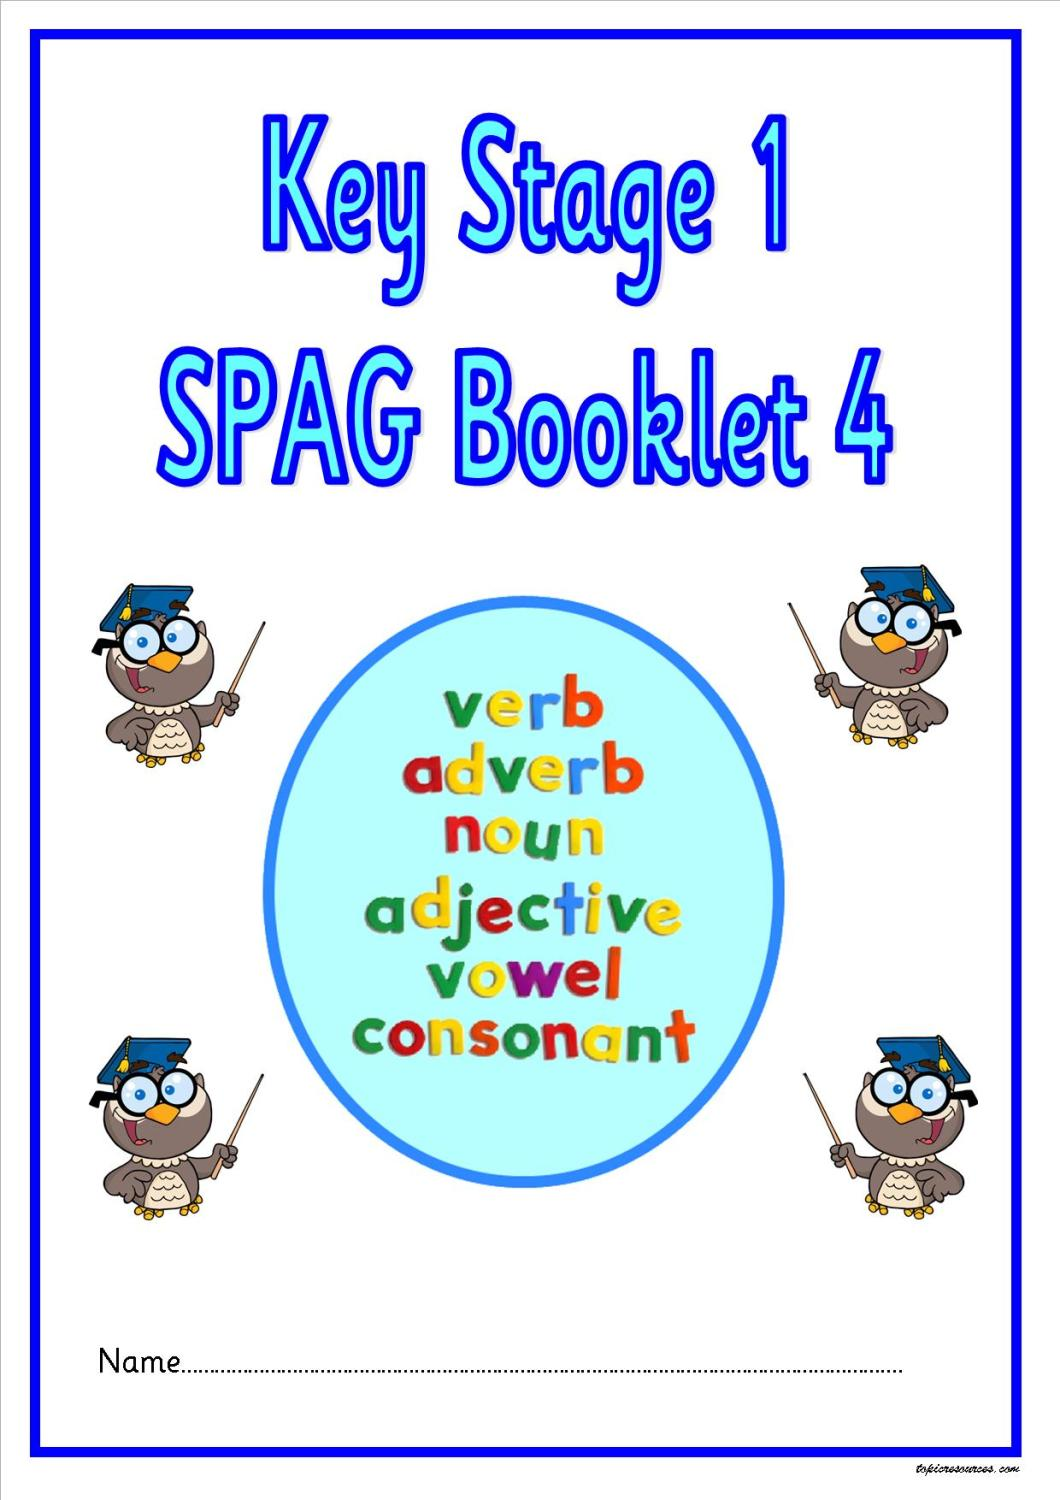 SPAG activity booklet4 for KS1 children